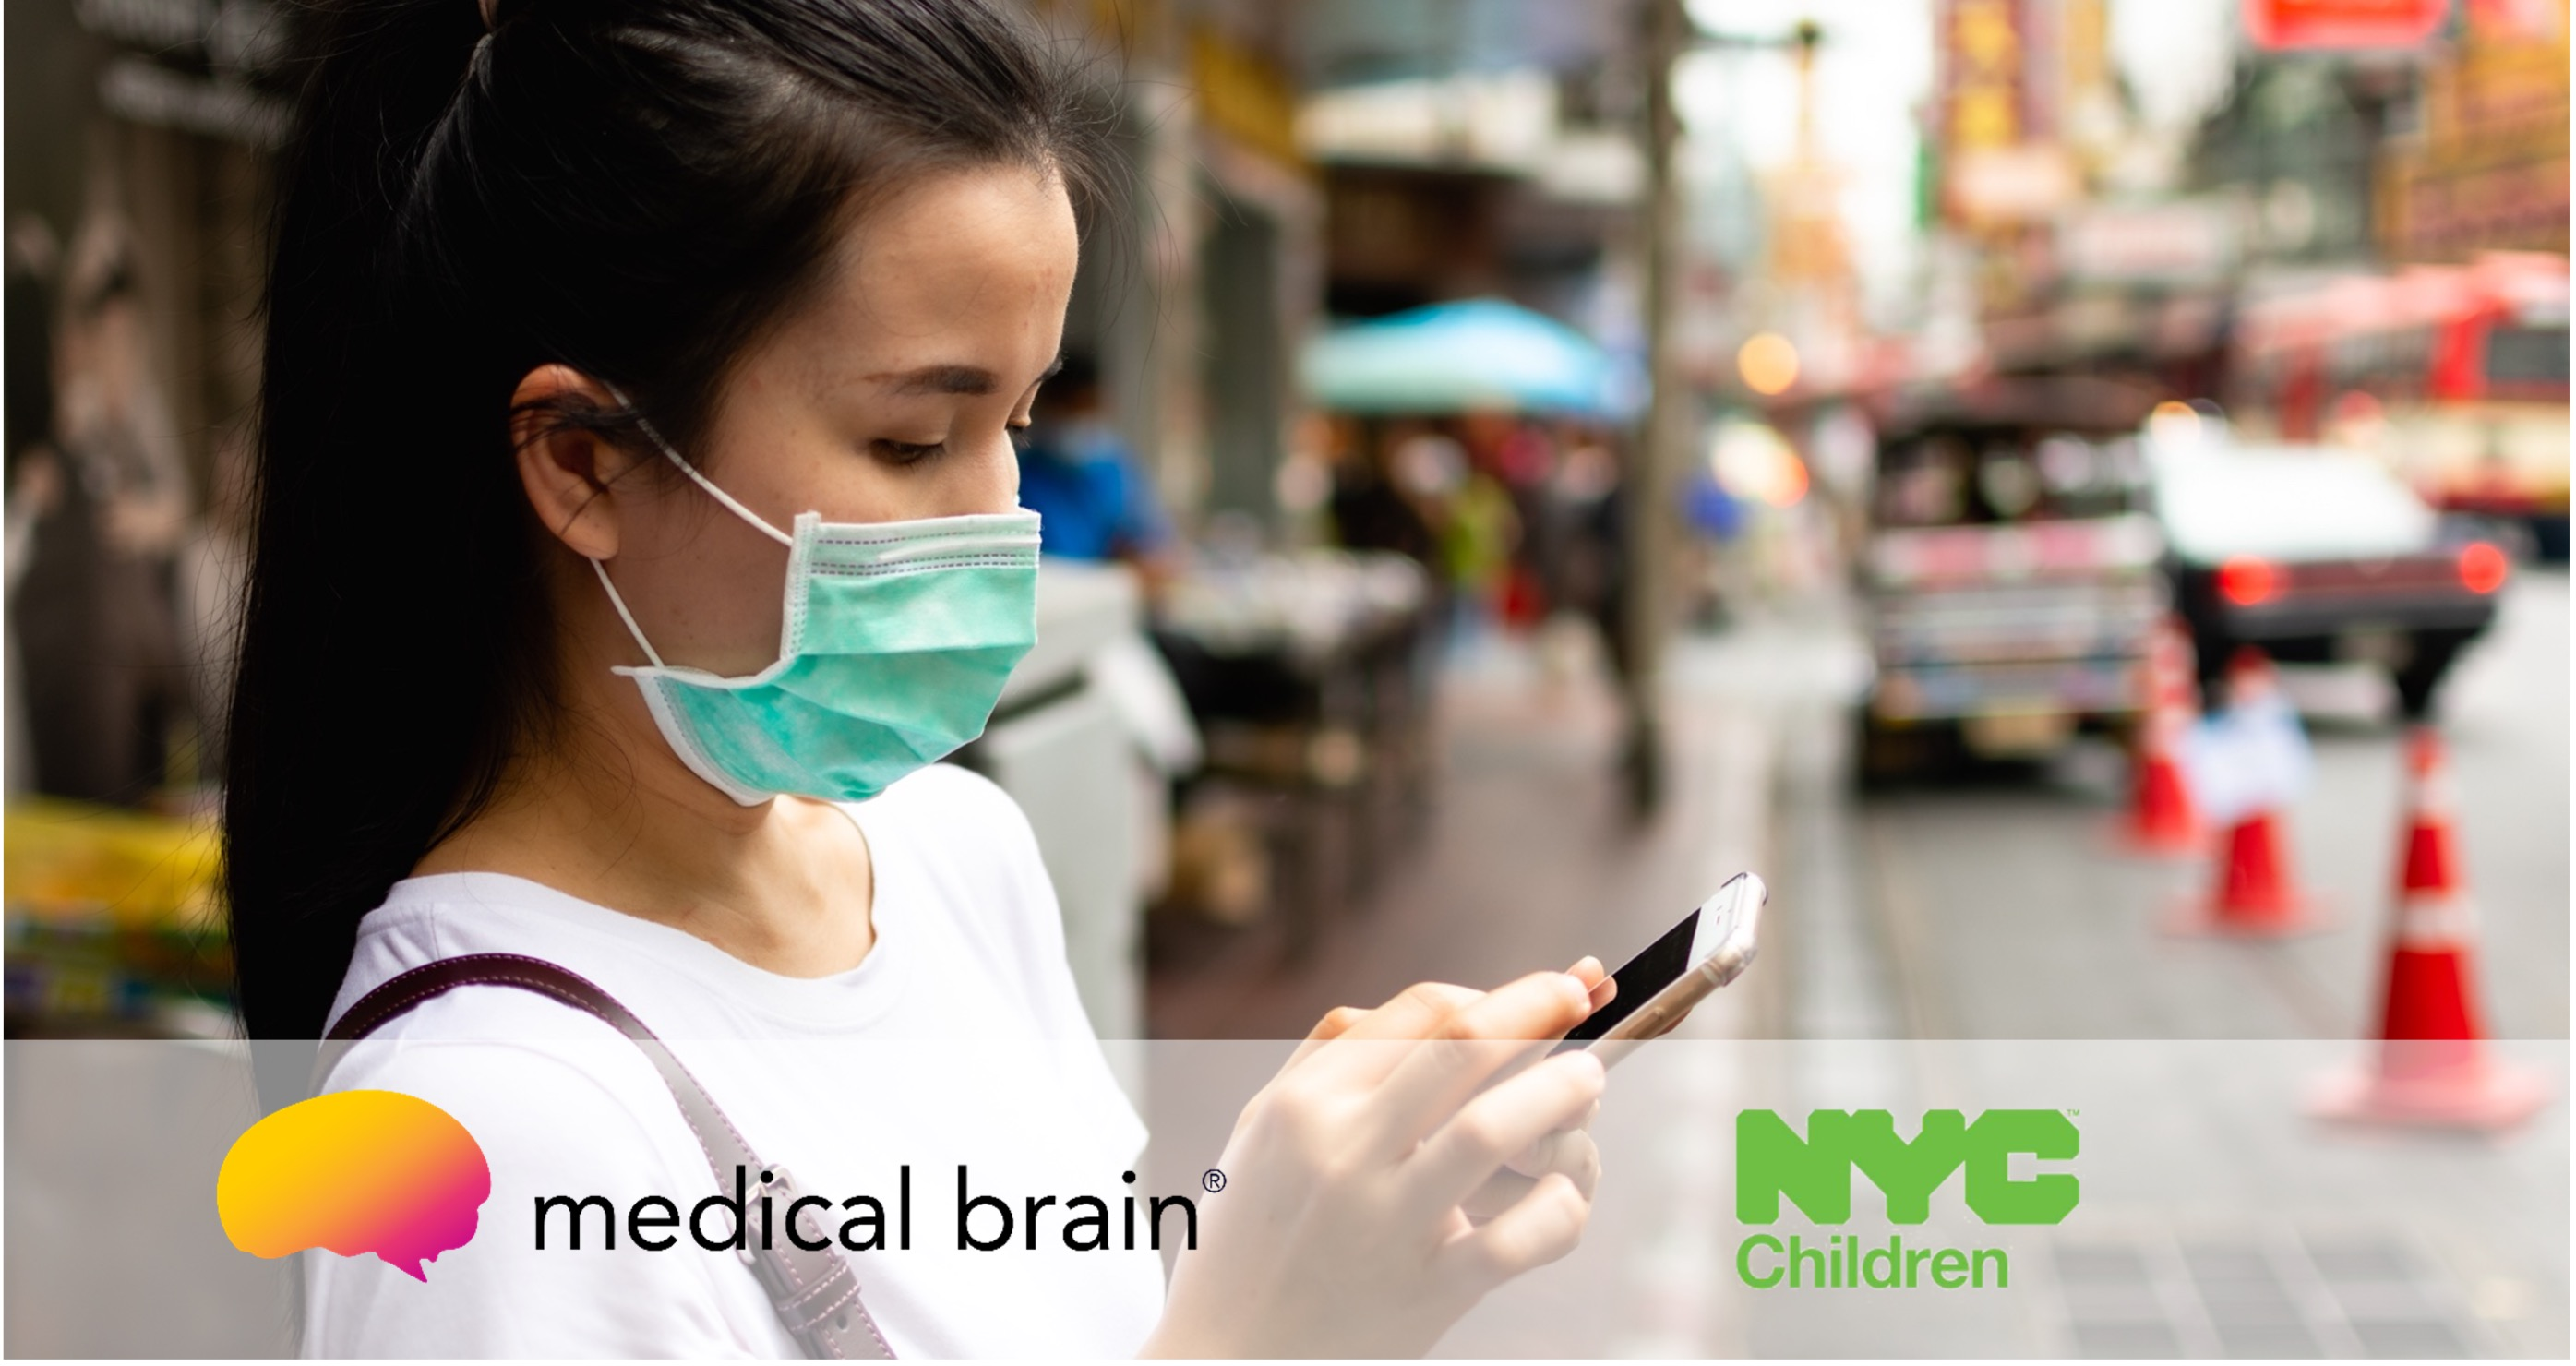 healthPrecision Announces New York City Administration For Children's Services Selects The COVID-19 Medical Brain For 24/7 Employee Support During COVID-19